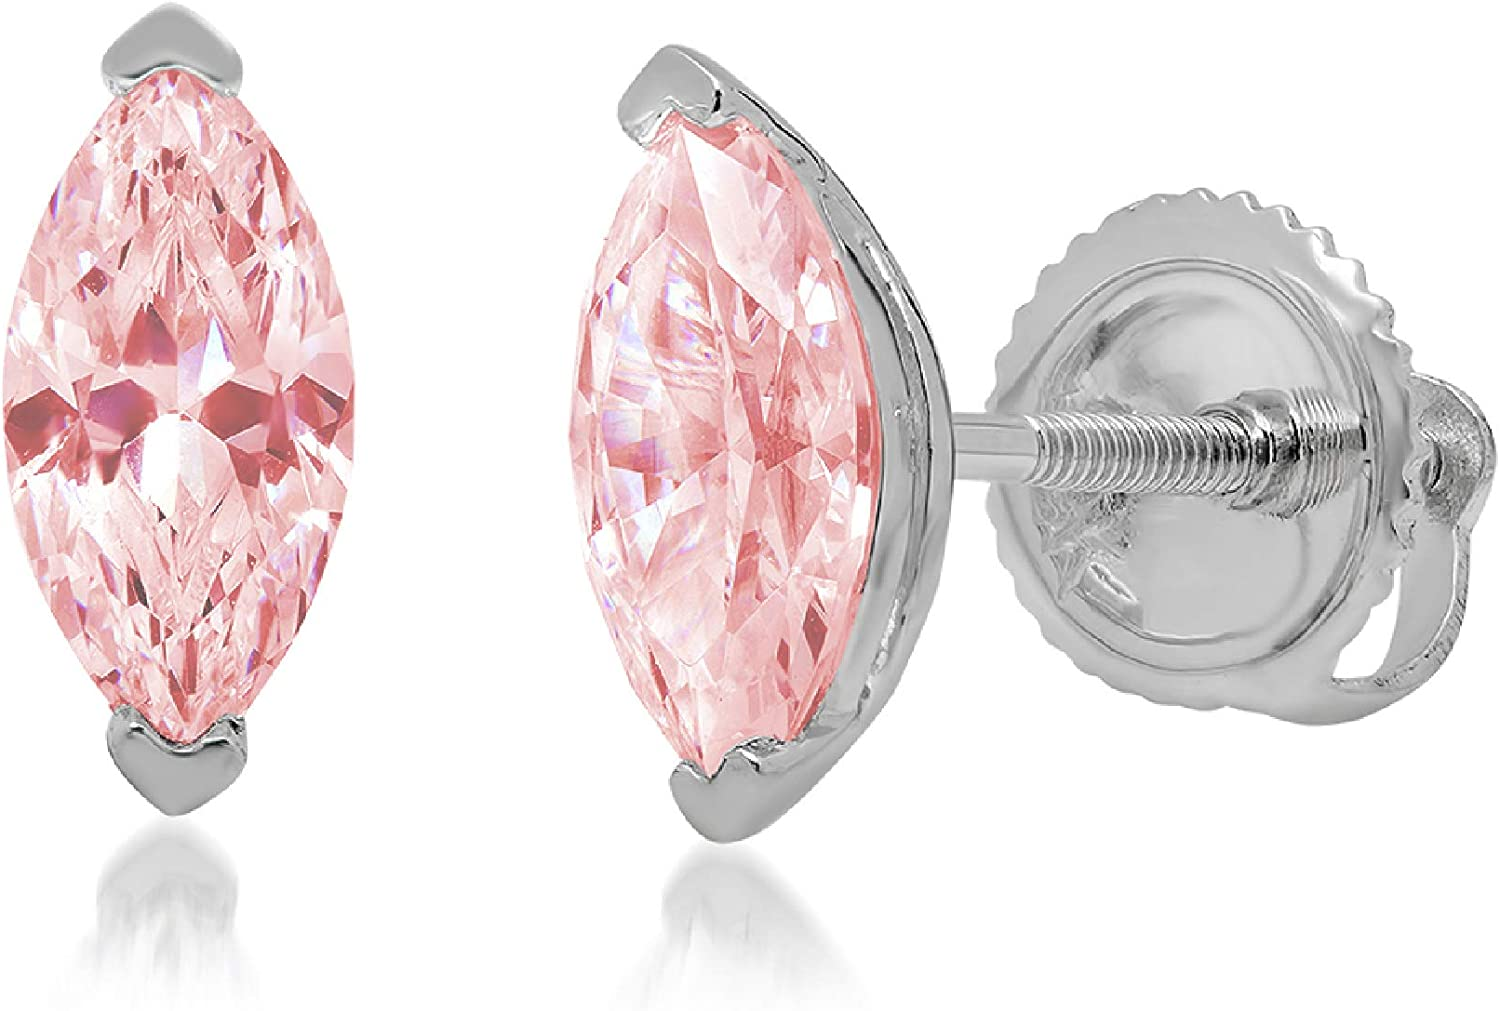 0.94cttw Marquise Cut ideal VVS1 Conflict Free Gemstone Solitaire Genuine Pink CZ Unisex Designer Stud Earrings Solid 14k White Gold Screw Back